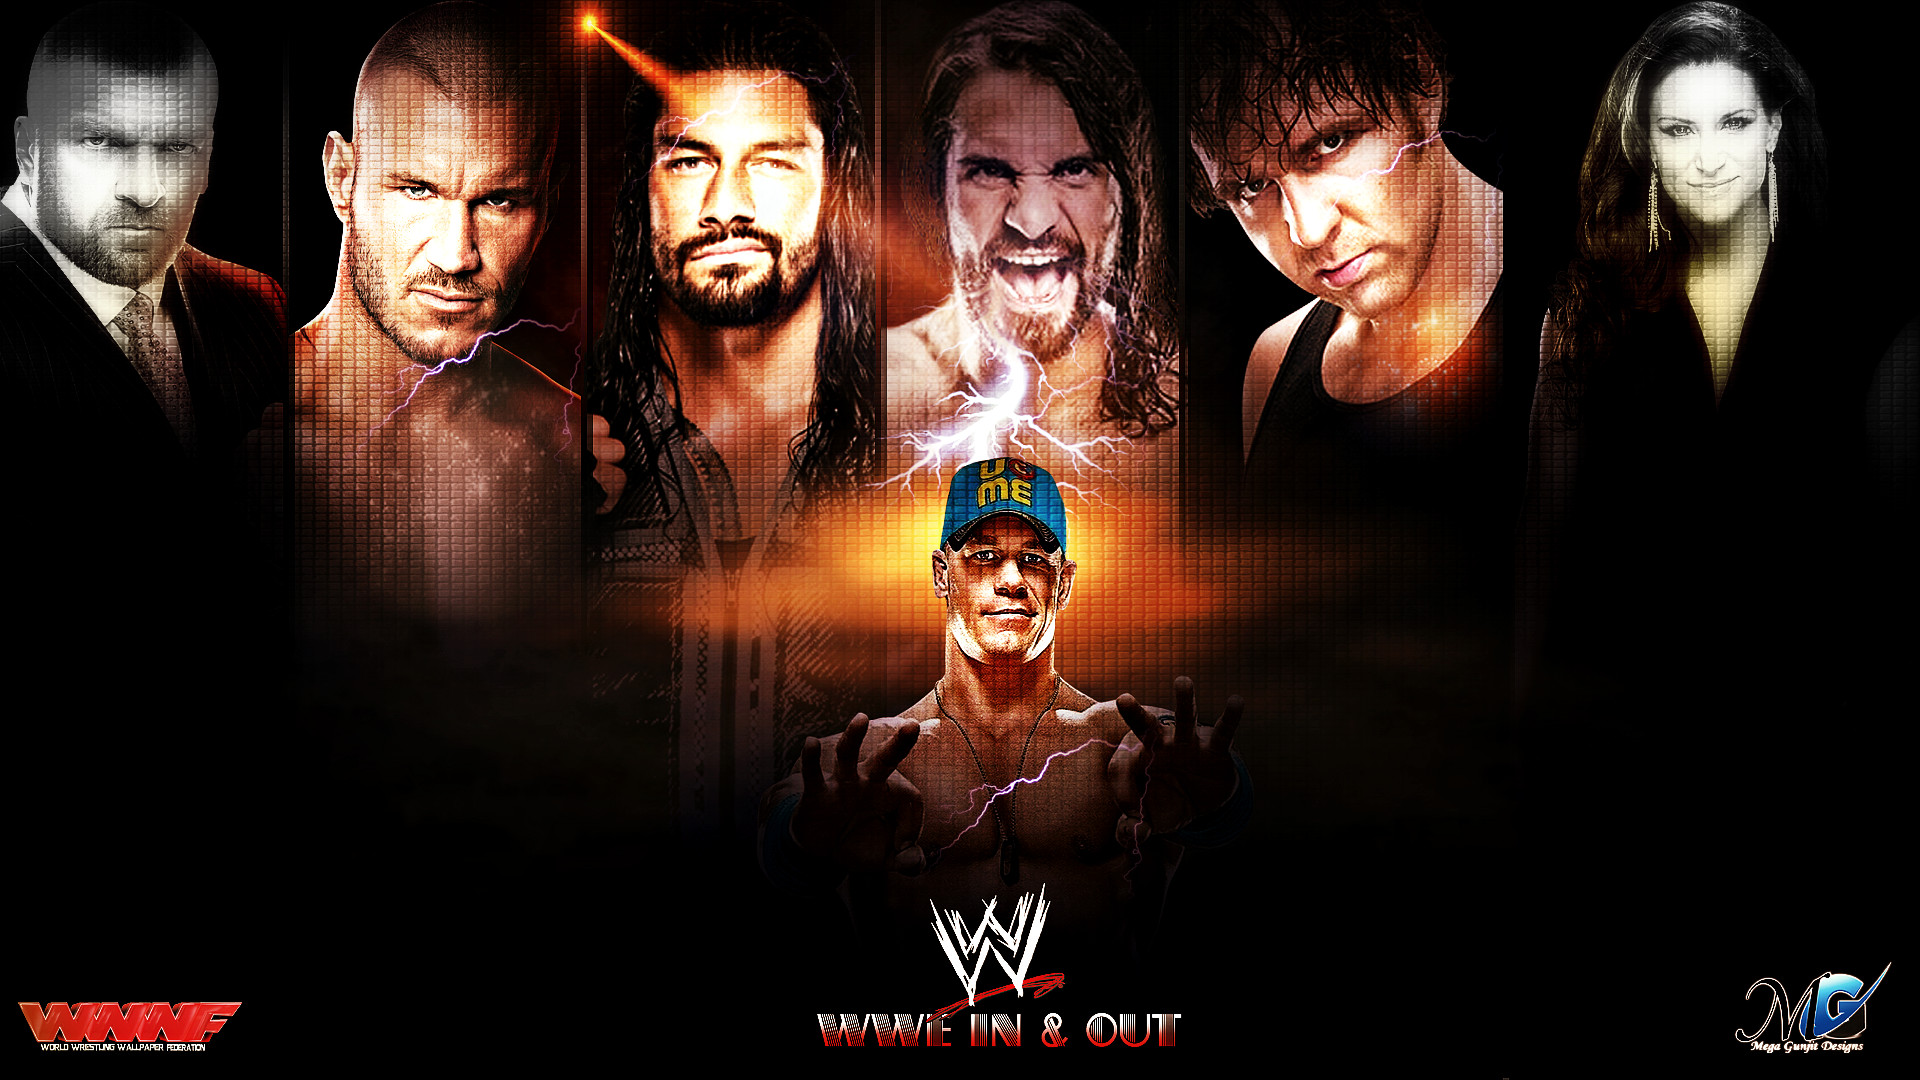 Wwe Logo 2015 | Wwe Logo 2015 Images, Pictures, Wallpapers on NMgnCP.com